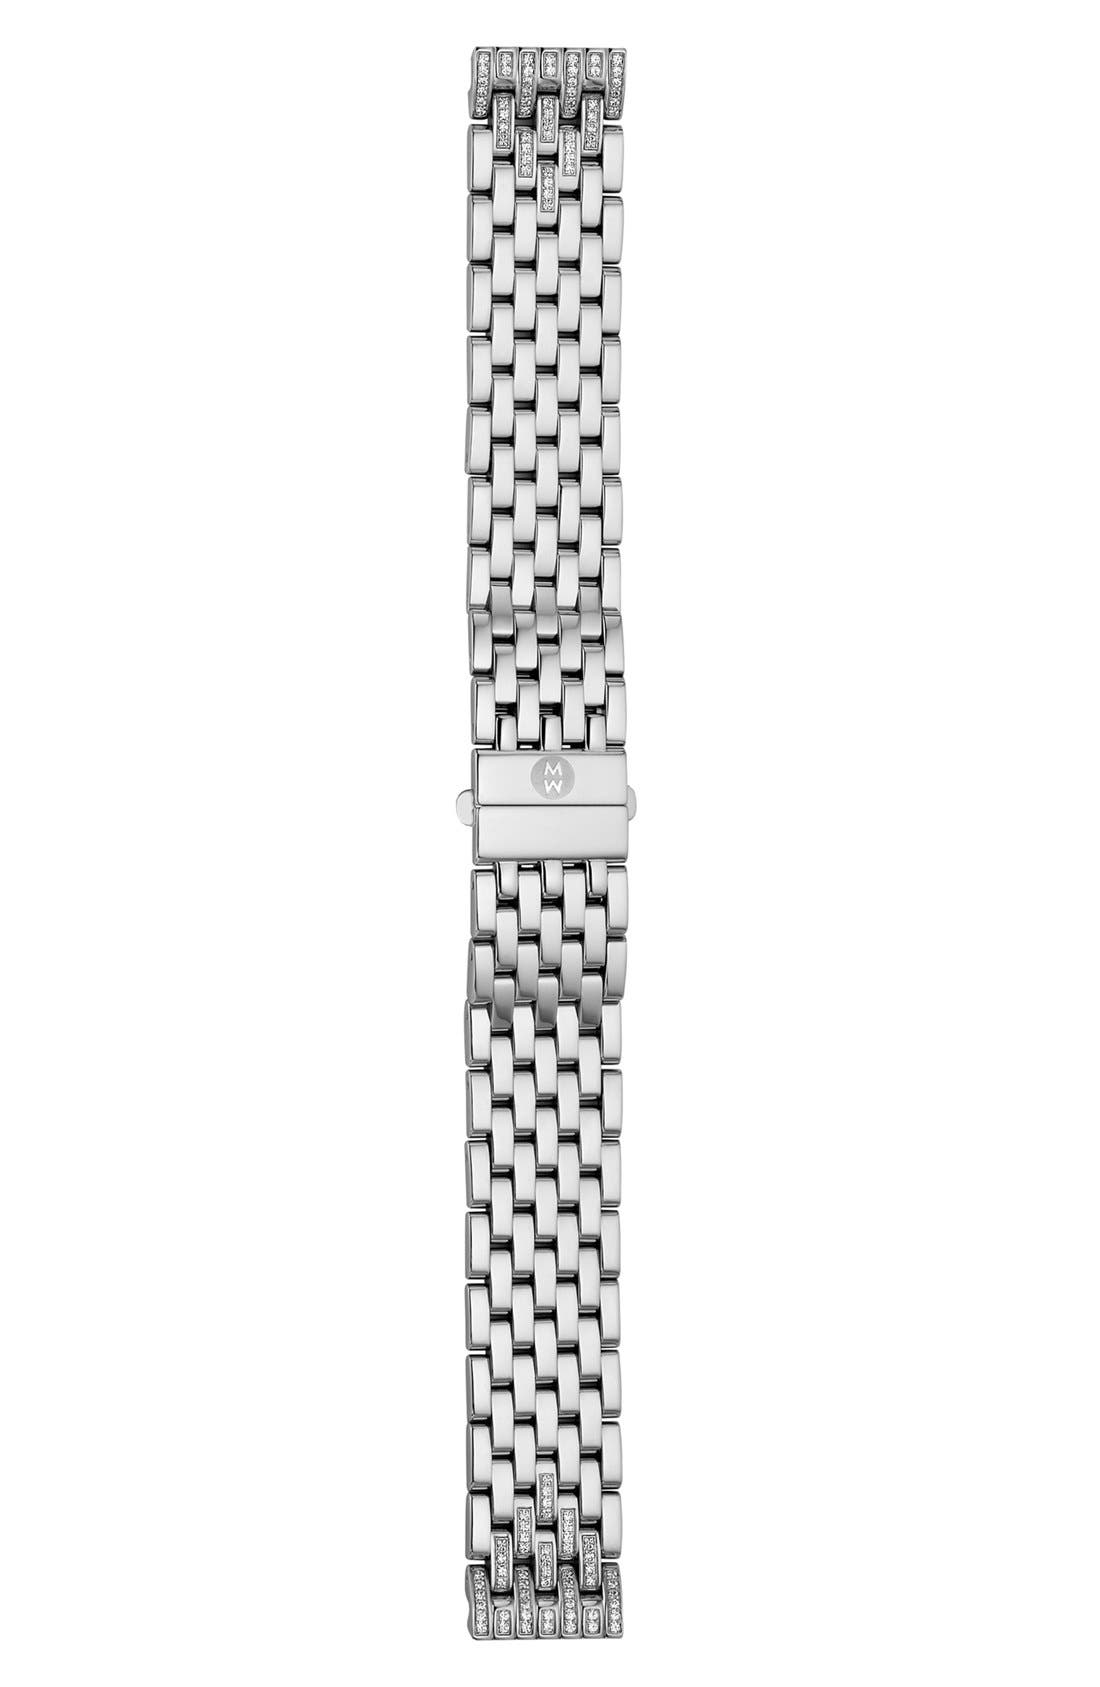 Alternate Image 1 Selected - MICHELE Deco 16 16mm Diamond Bracelet Watchband